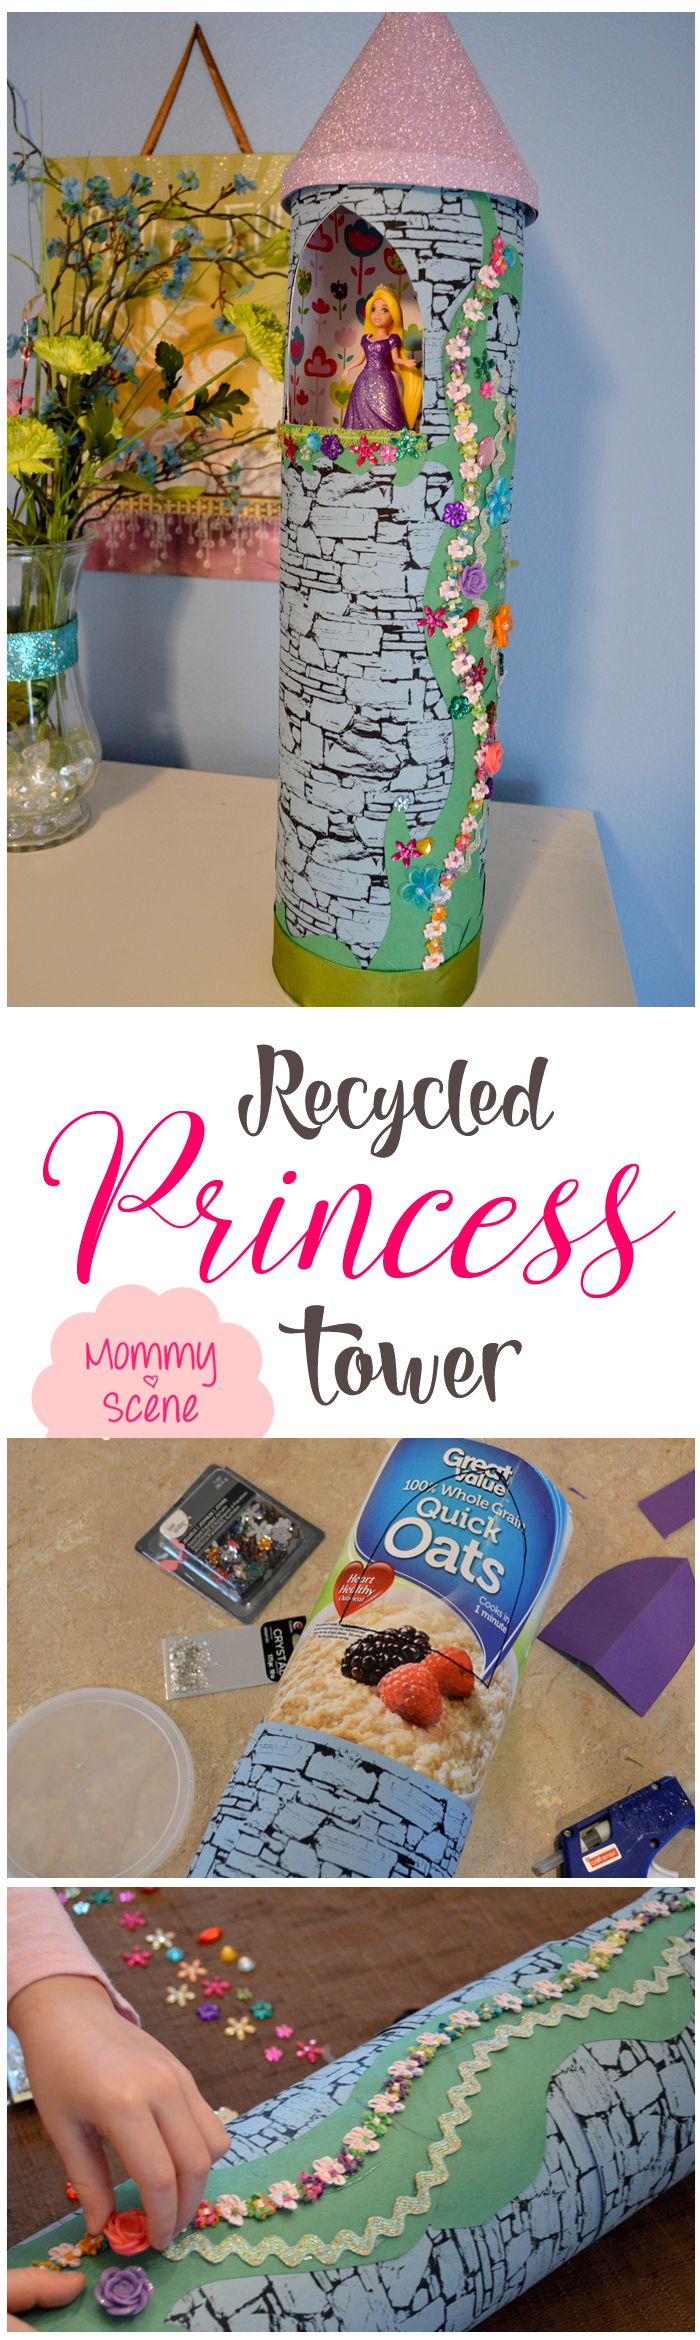 This beautiful little Rapunzel-inspired Princess Tower is easy to make with an old lemonade can and recycled oatmeal container!